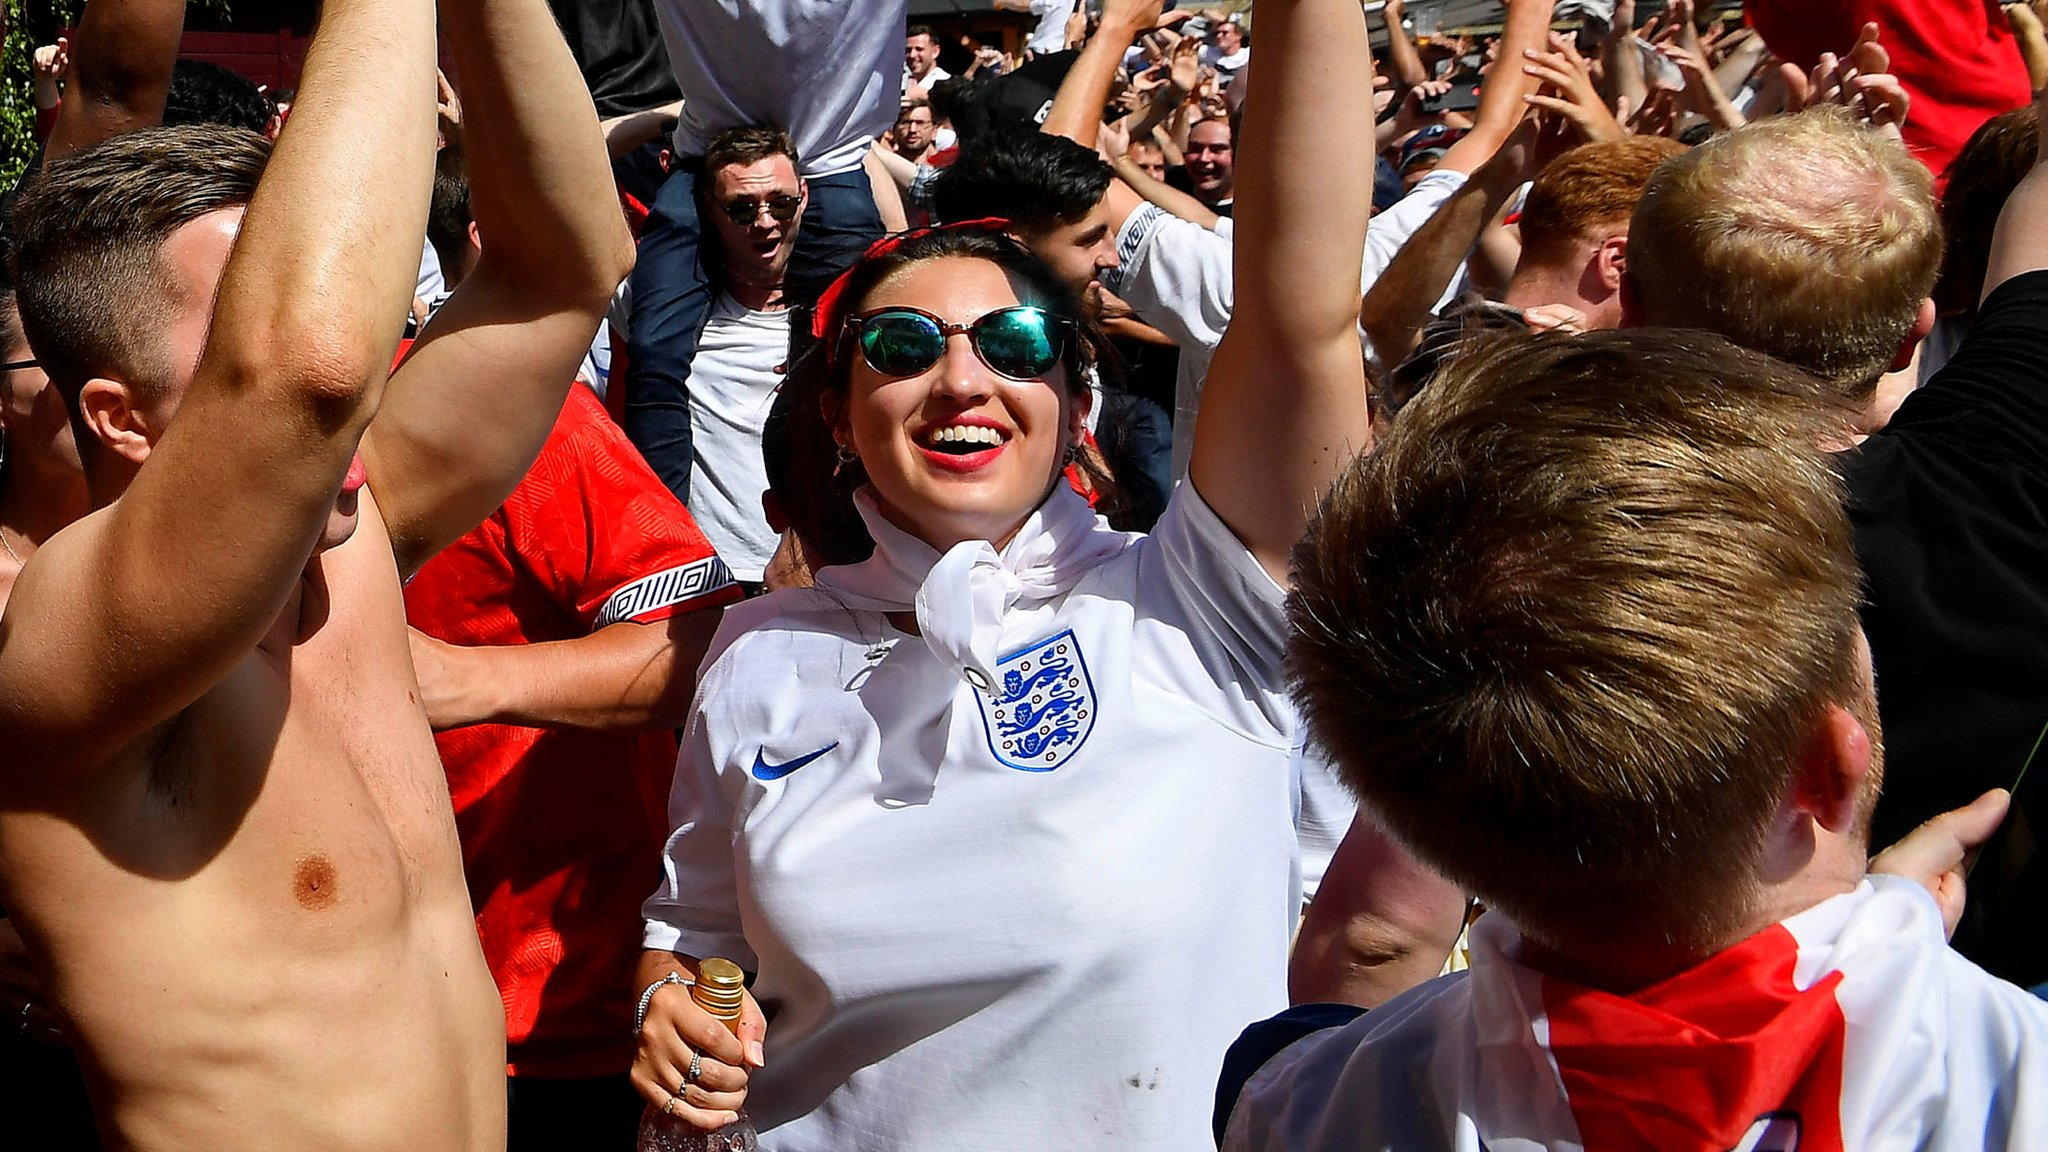 'It's coming home!' - how England celebrated a record World Cup win